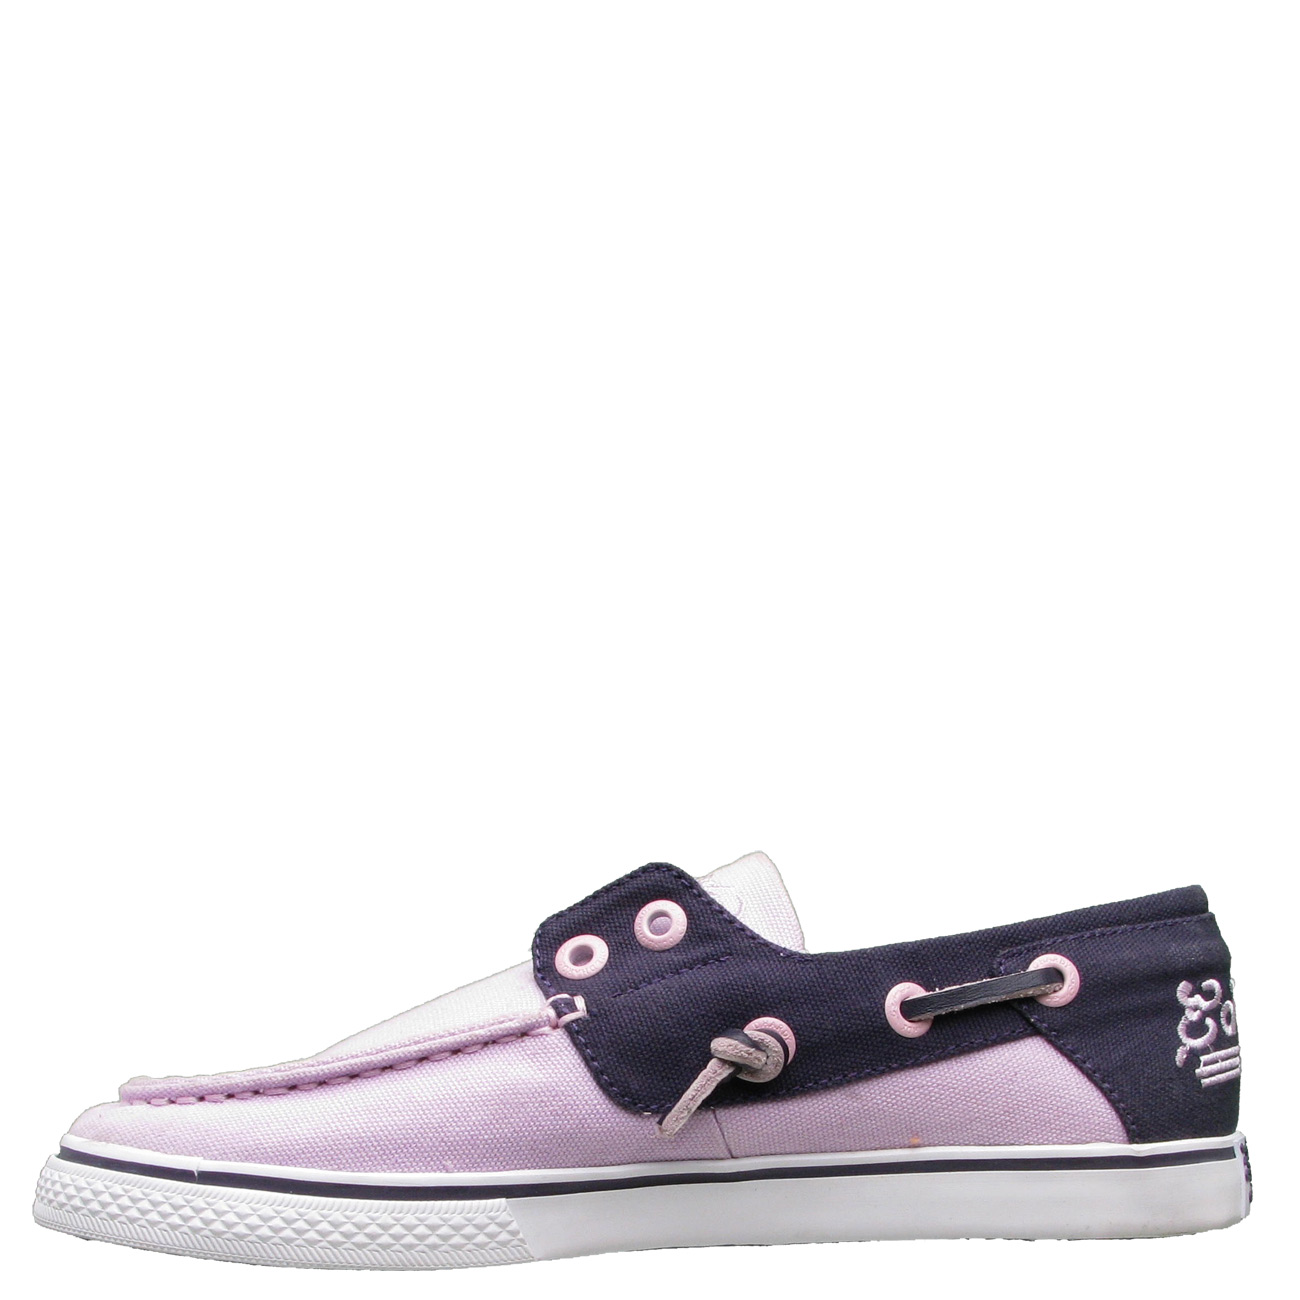 Ed Hardy Del Mar Boat Shoe for Women - Purple